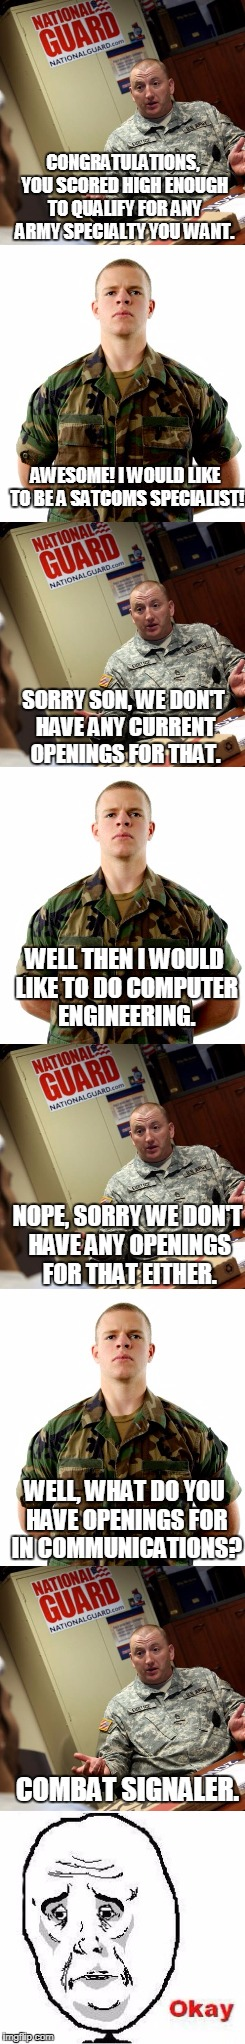 When You Are Given the Illusion of Choice... | CONGRATULATIONS, YOU SCORED HIGH ENOUGH TO QUALIFY FOR ANY ARMY SPECIALTY YOU WANT. AWESOME! I WOULD LIKE TO BE A SATCOMS SPECIALIST! SORRY  | image tagged in okay,army,be all you can be | made w/ Imgflip meme maker